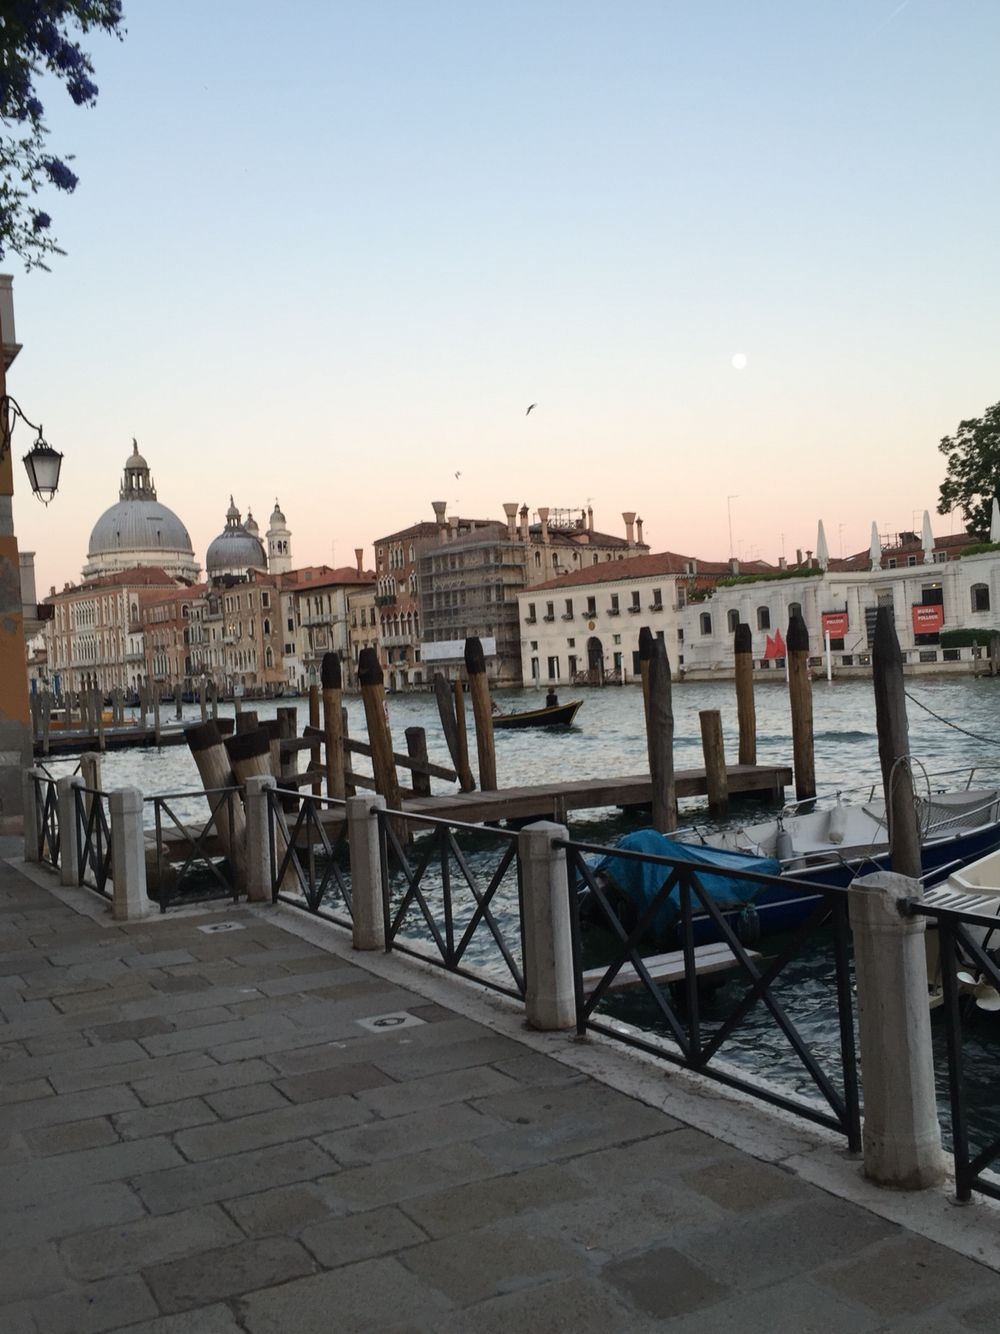 Over looking the grand canal in Venice